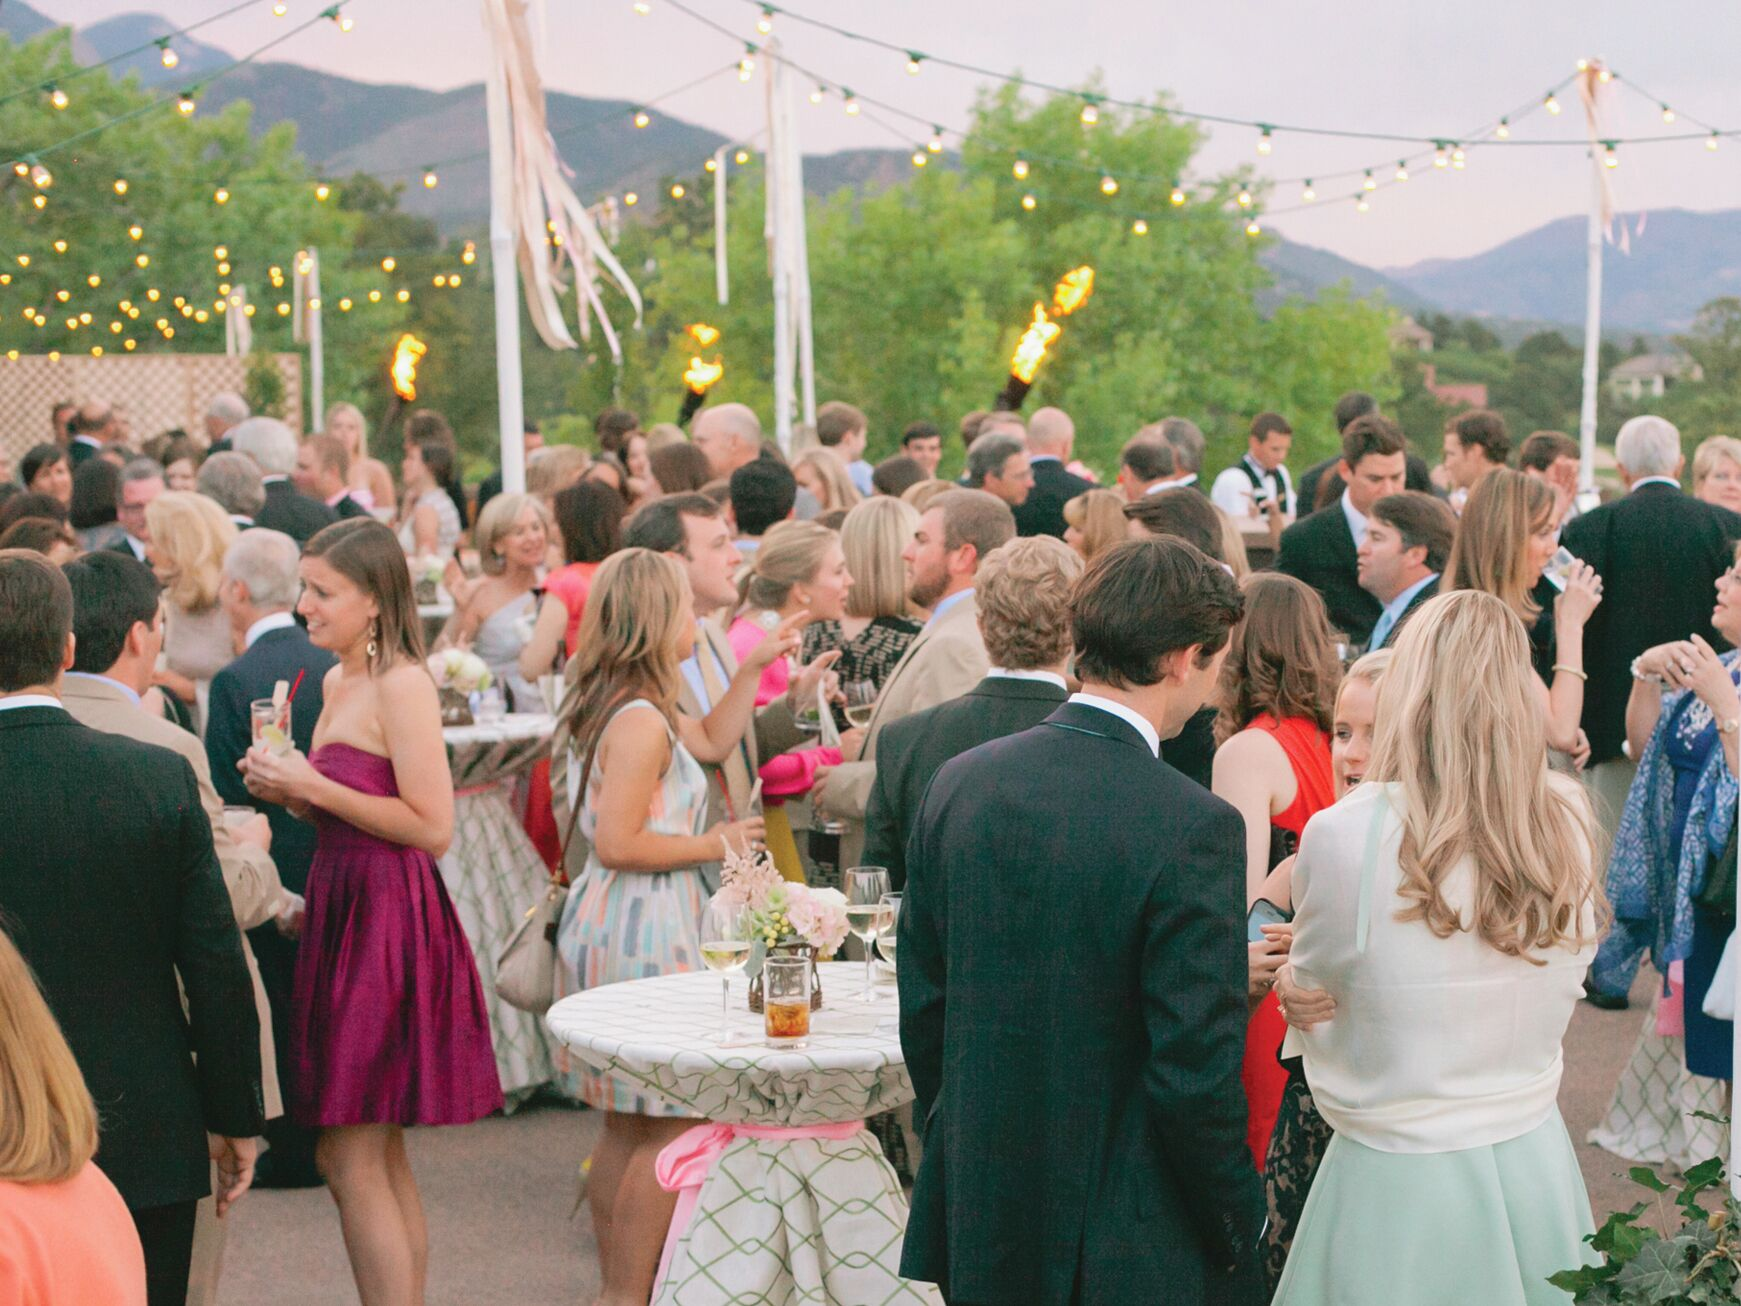 7 Tips On How To Seat Your Wedding Reception Guests